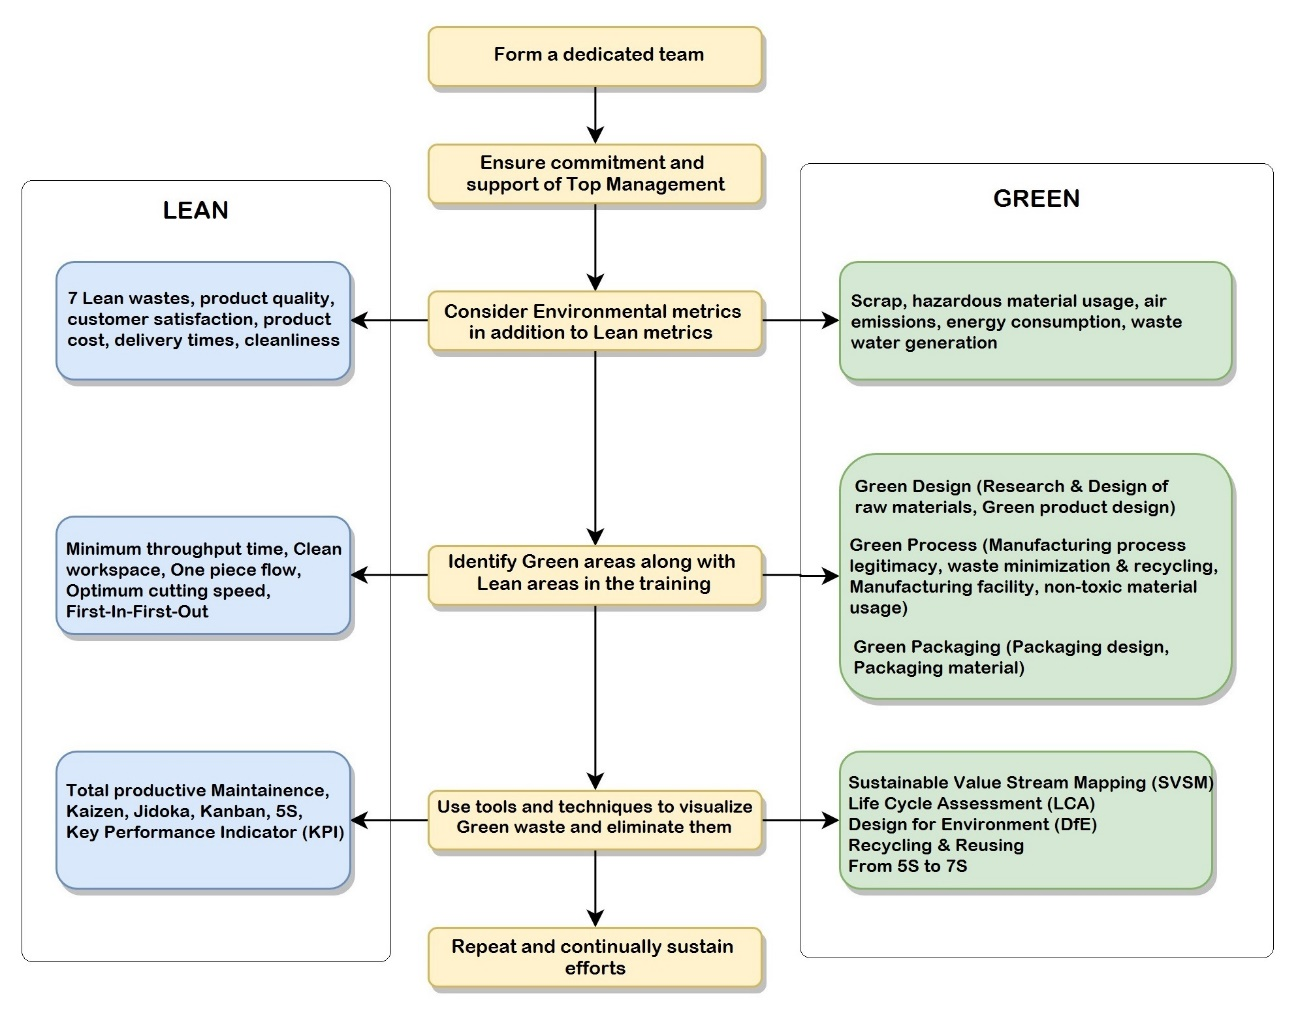 Principles to Embed Sustainability Thinking into Lean Manufacturing